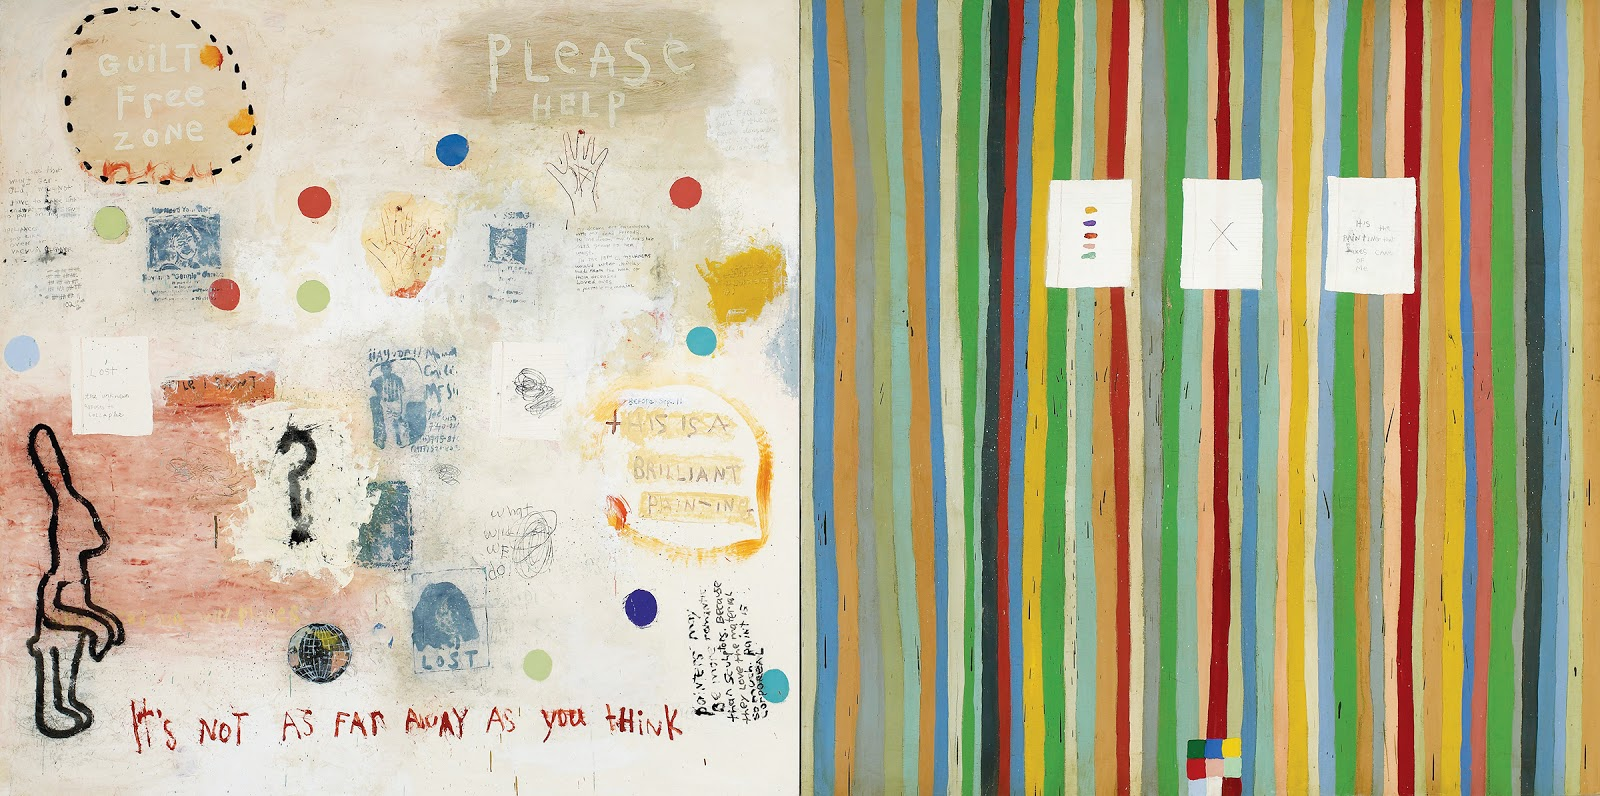 squeak carnwath everything 2 2002 oil and alkyd on canvas over panel 77 x 154 in courtesy of jane lombard gallery